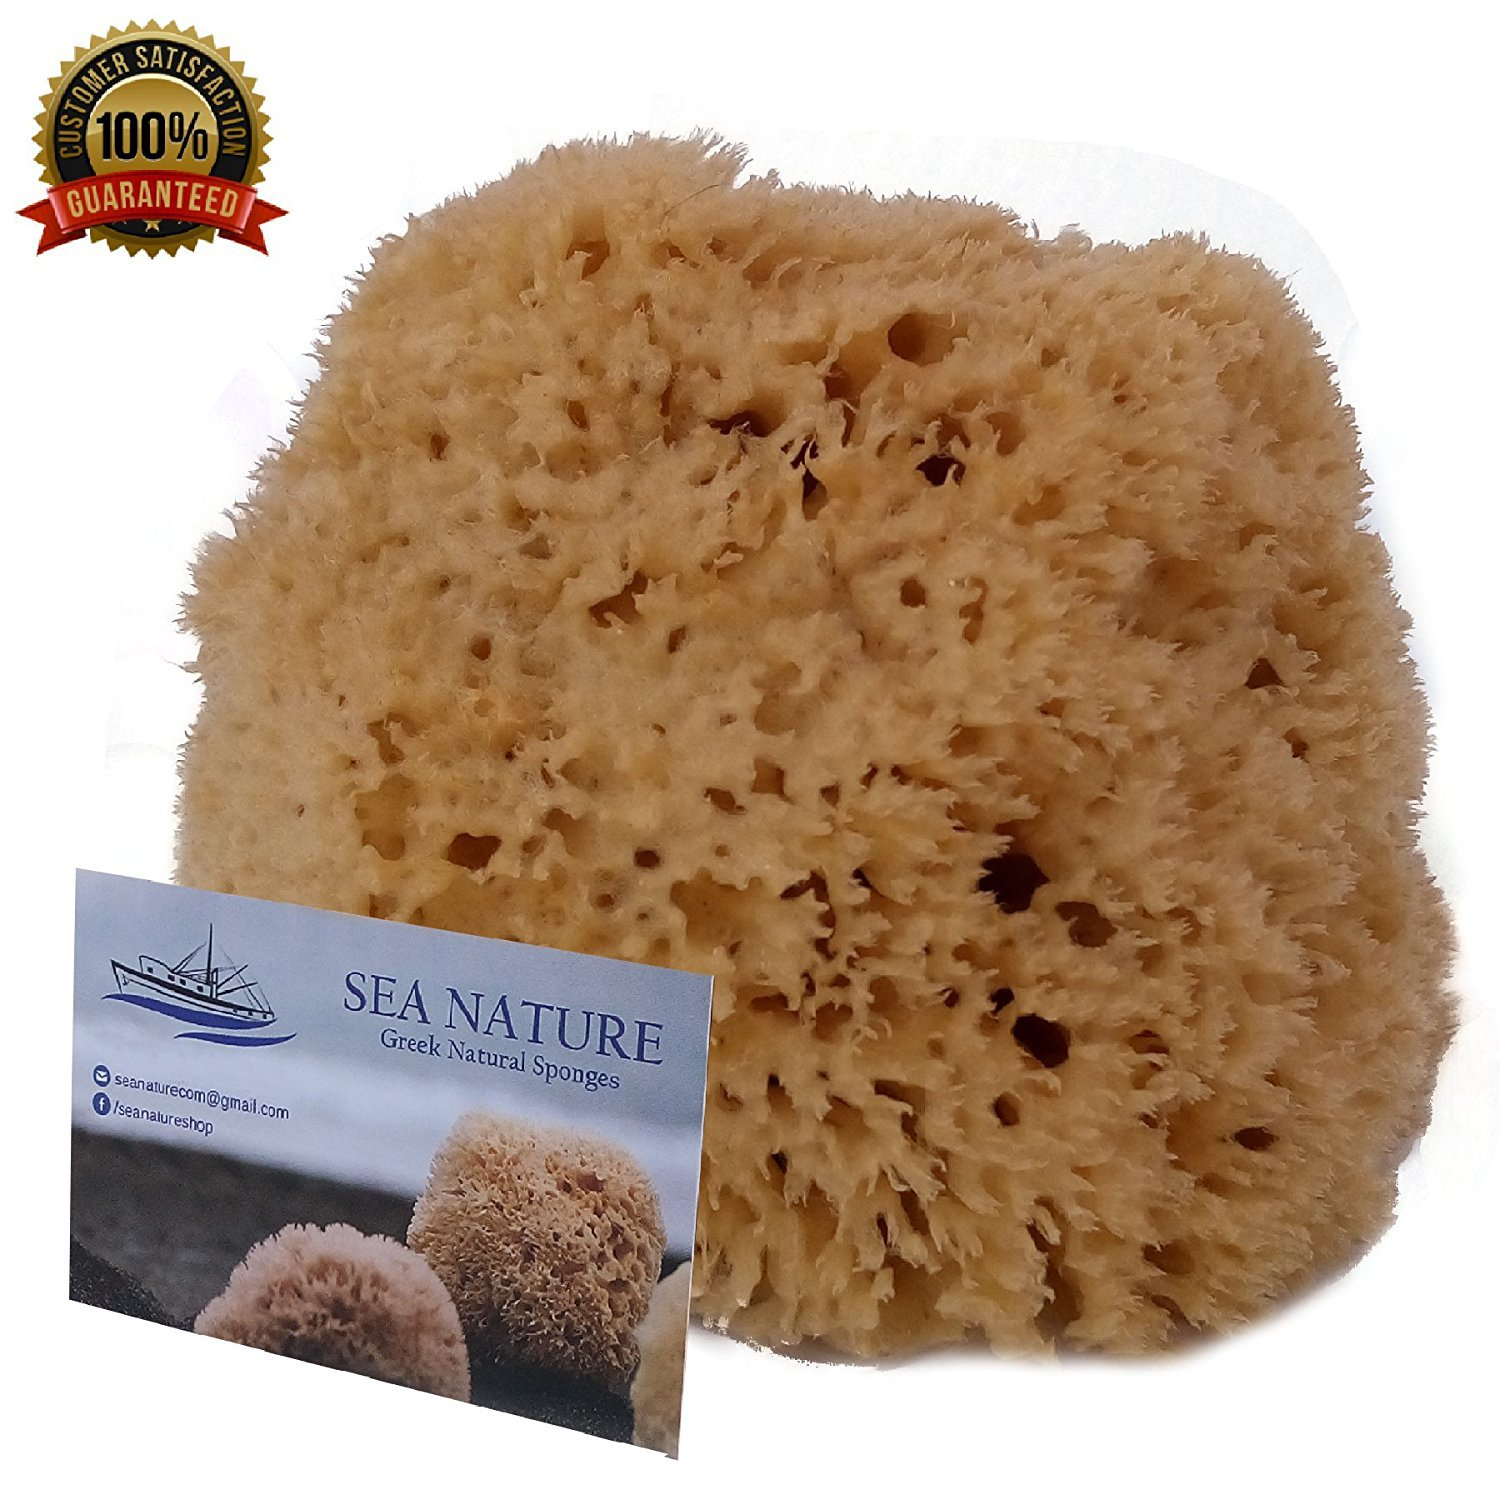 Natural Sea Sponge SEA NATURE BRAND 5-6'' Honeycomb Type for Body Bath and Face Cleaning ideal for Baby Bathing - Strong and Durable Guaranteed